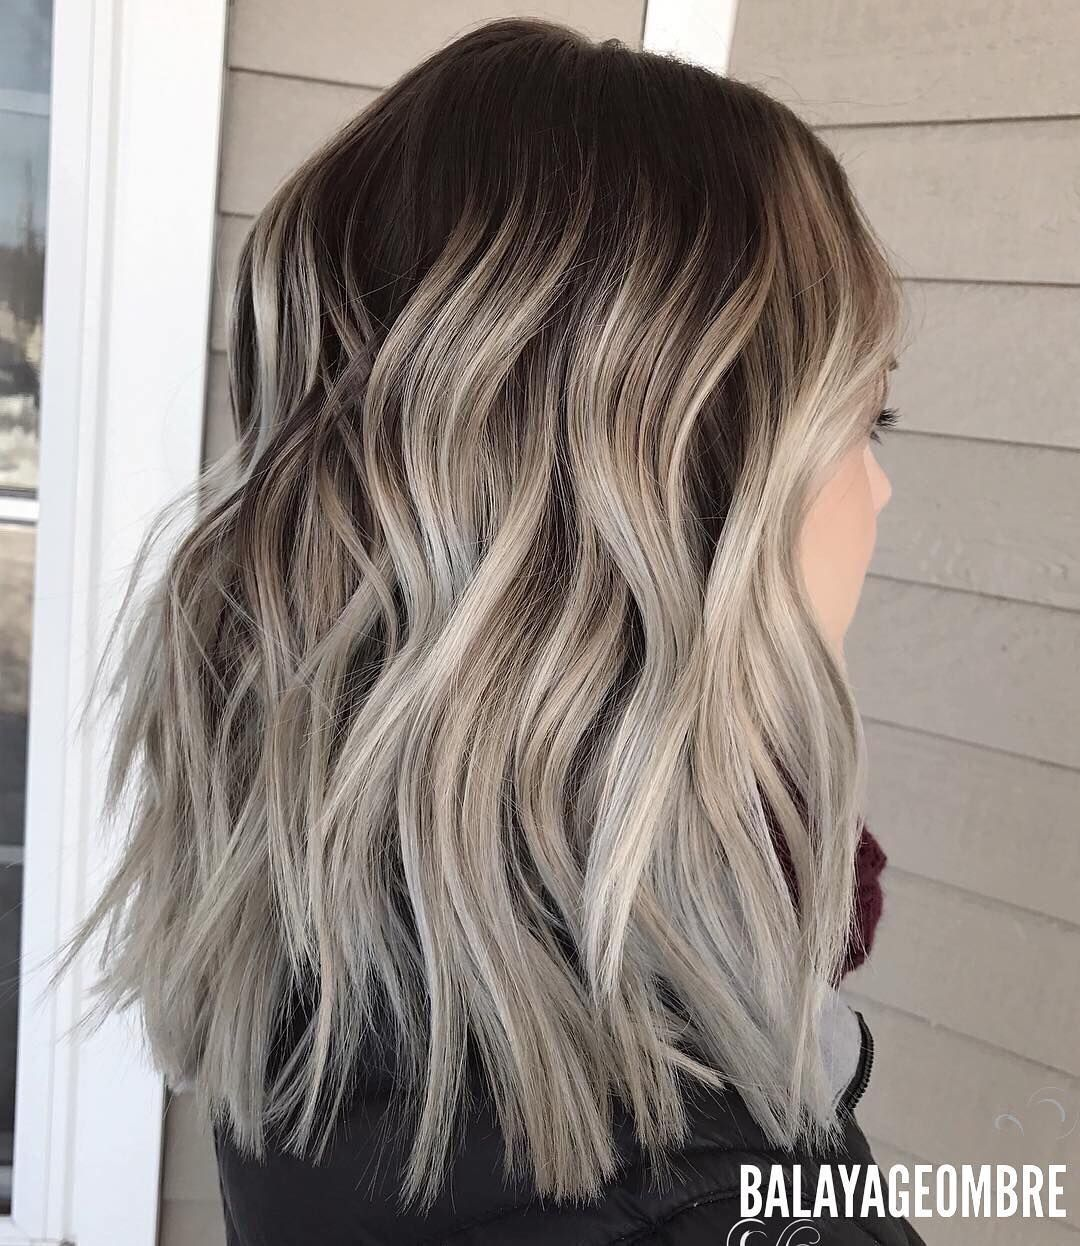 10 Medium Layered Hairstyles In Beige Brown Ash Blonde